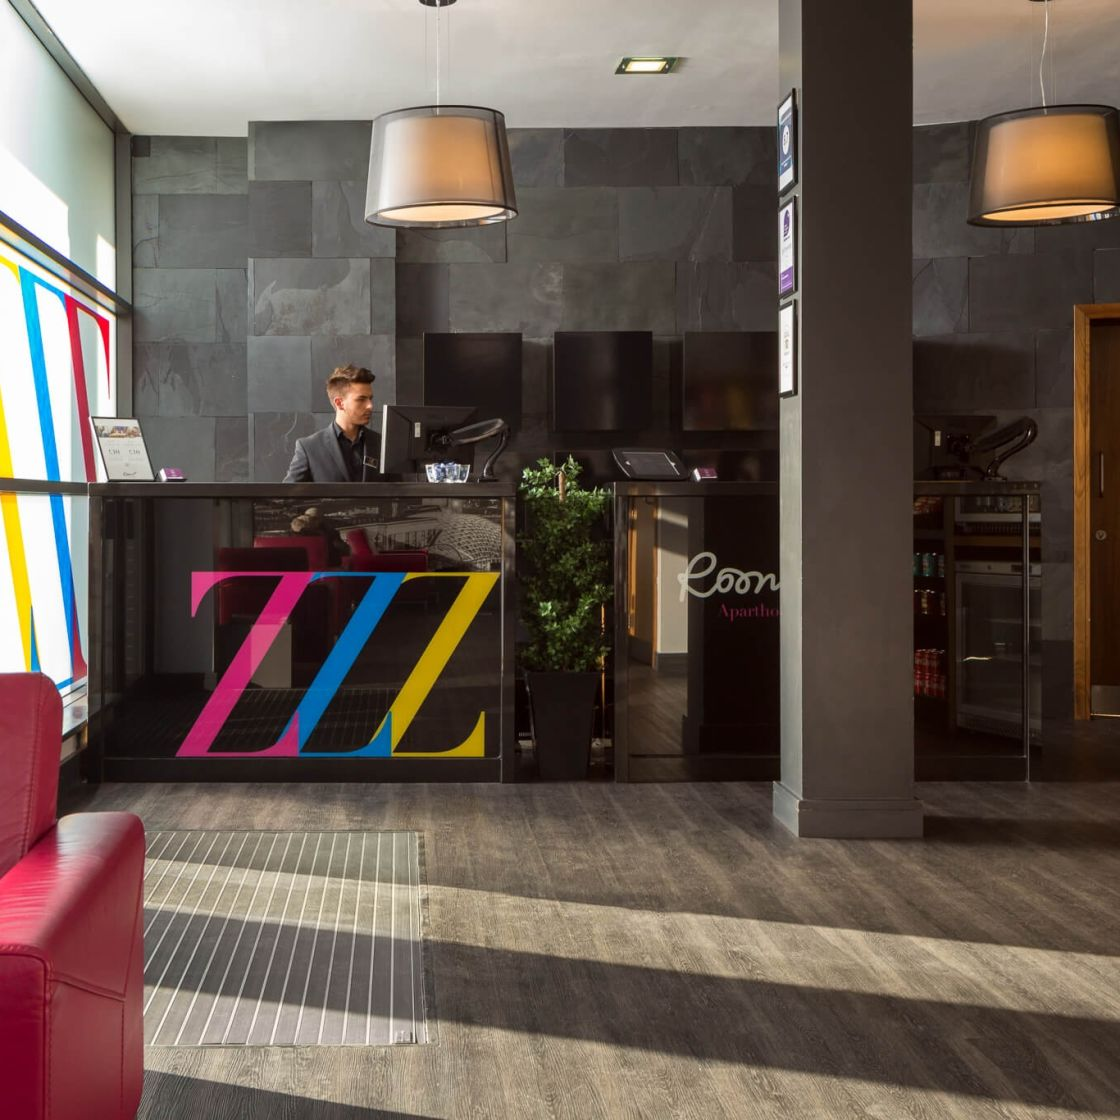 24 hour reception desk at IconInc @ Roomzzz Leeds City West. Student Accommodation in Leeds